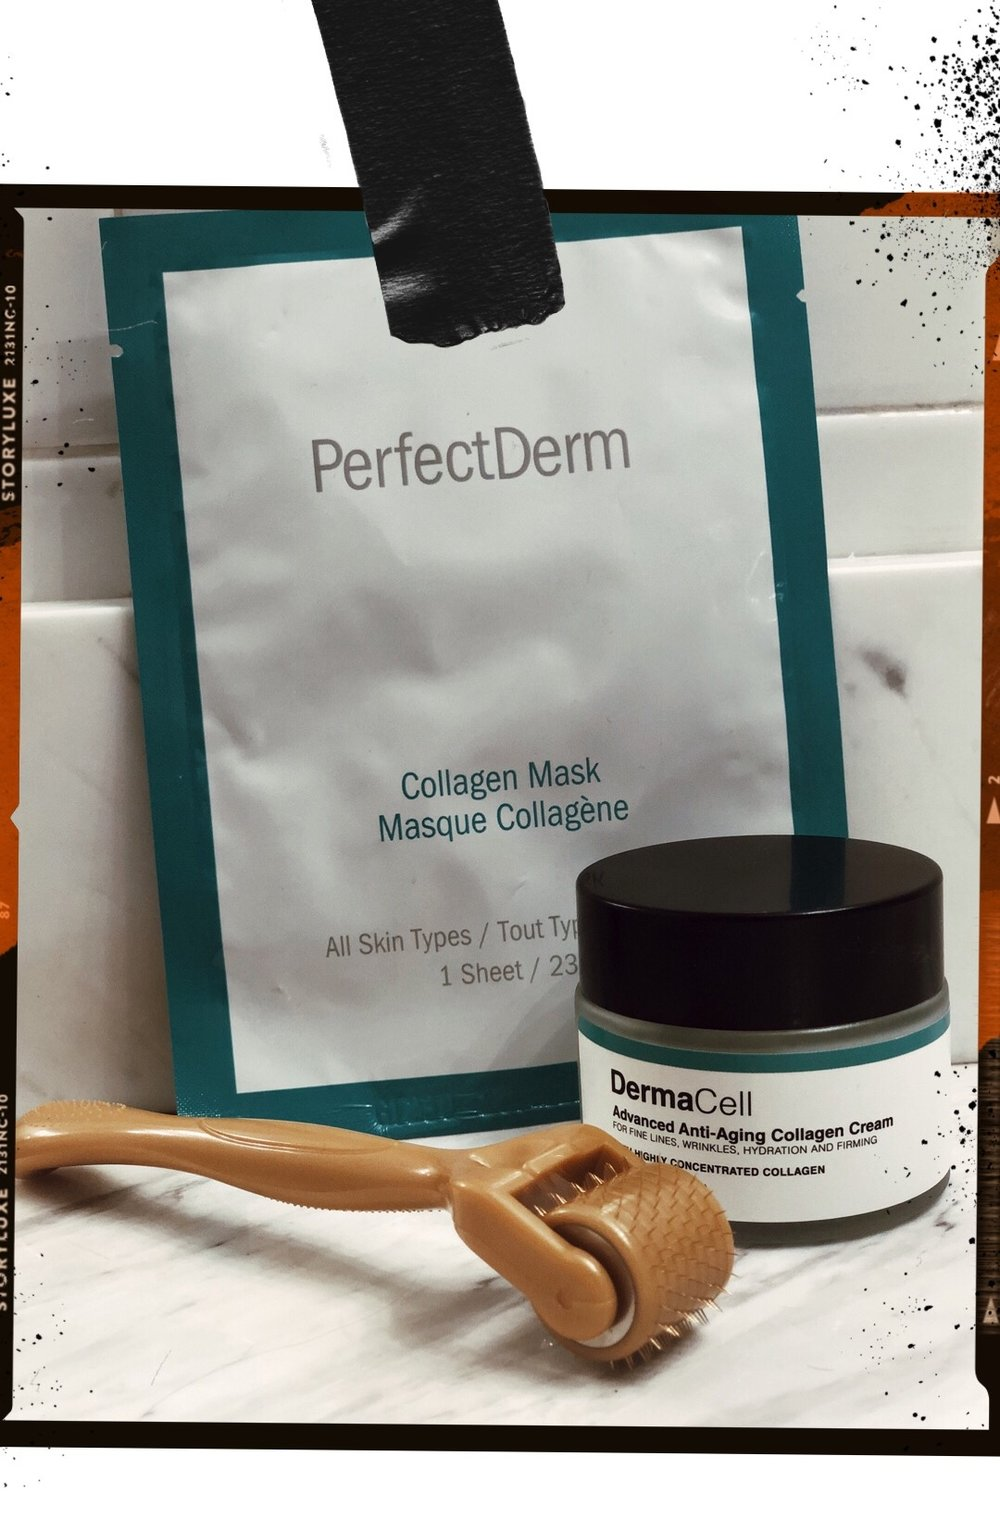 My+review+of+derma+roller+and+how+to+use+facial+rollers+a+home